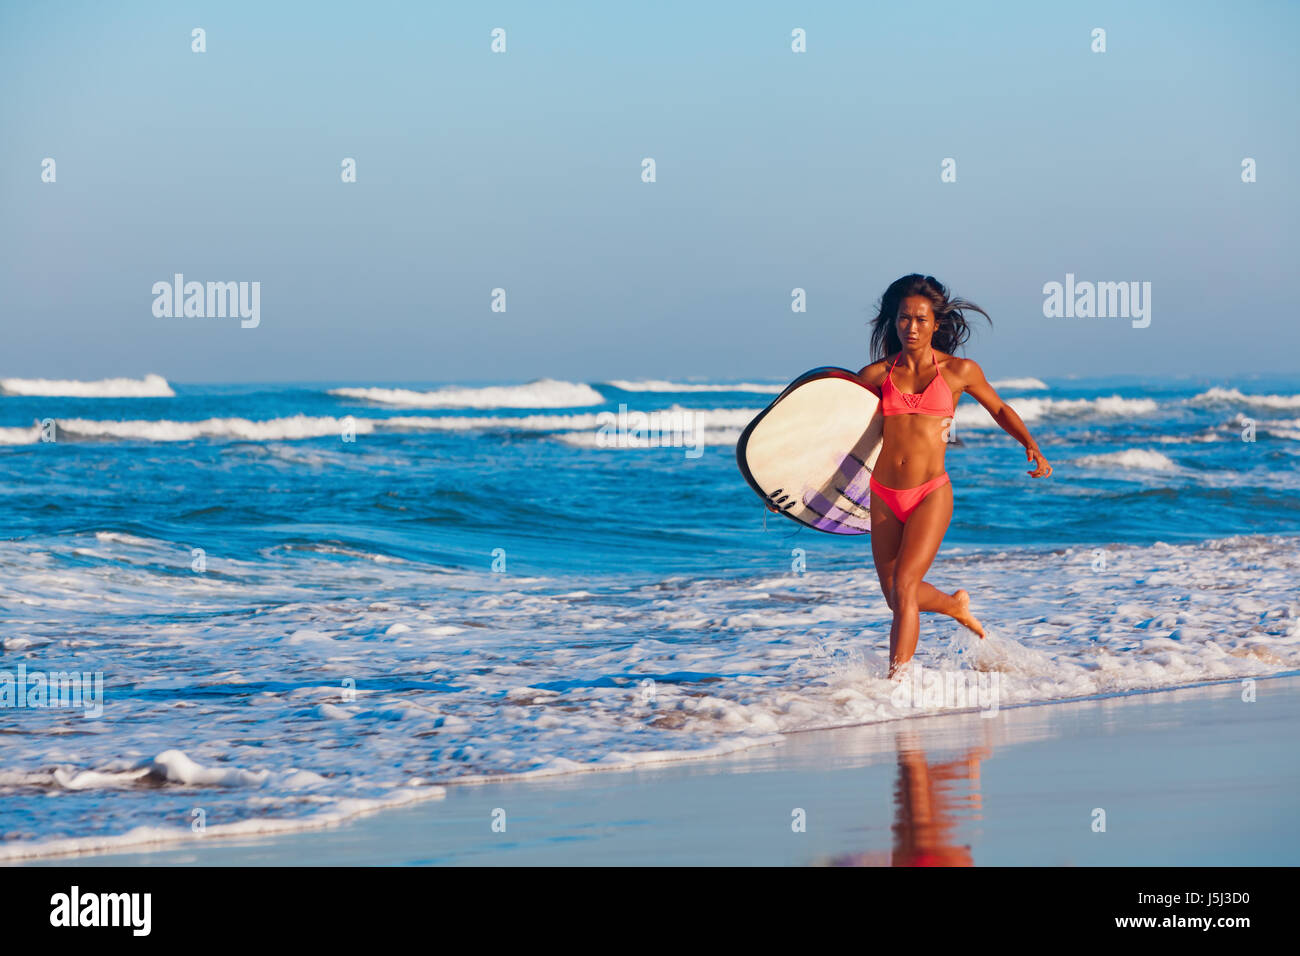 Girl in bikini with surf board has fun. Woman surfer run into water, jump with splashes through ocean wave. People - Stock Image